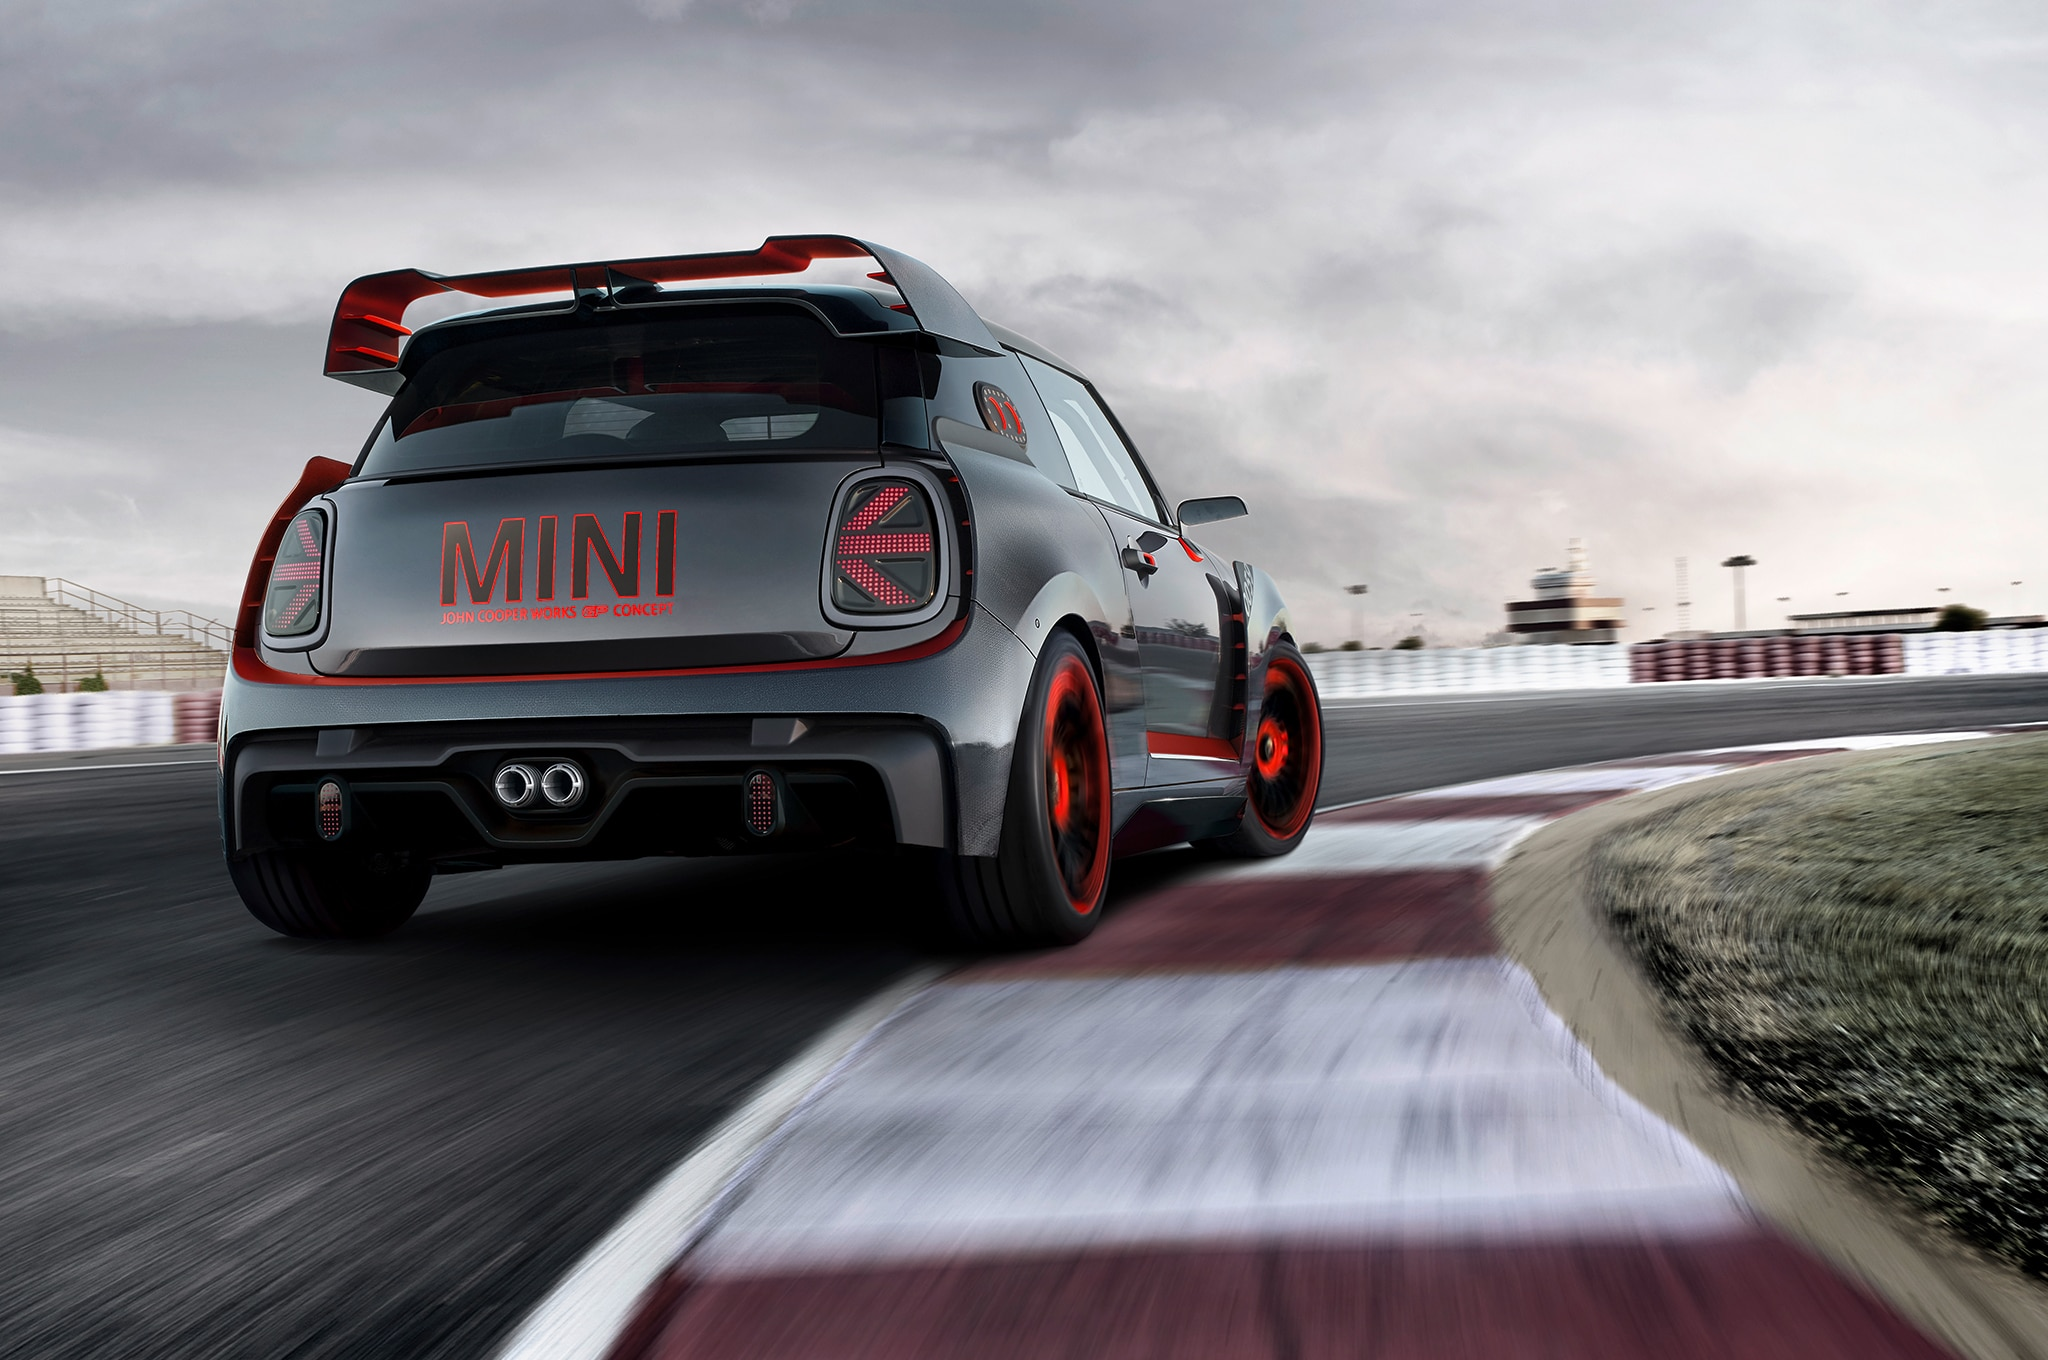 52 The Best 2020 Mini Countryman Redesign